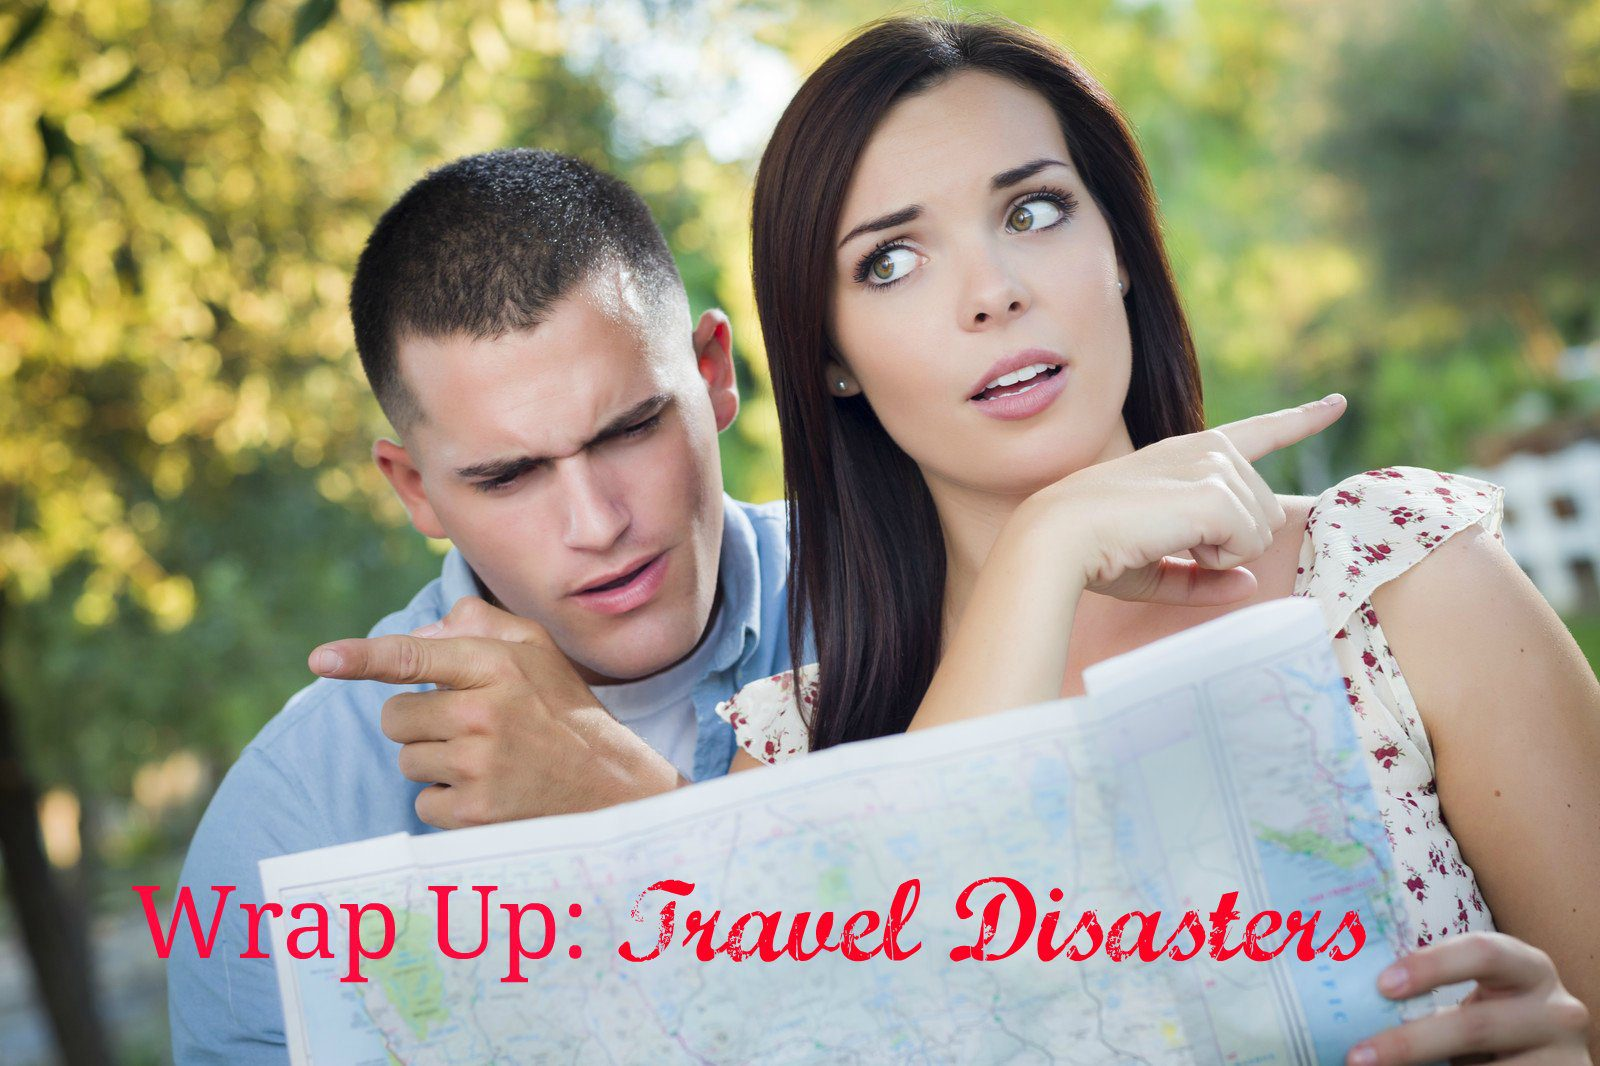 Wrap up - Travel Disasters